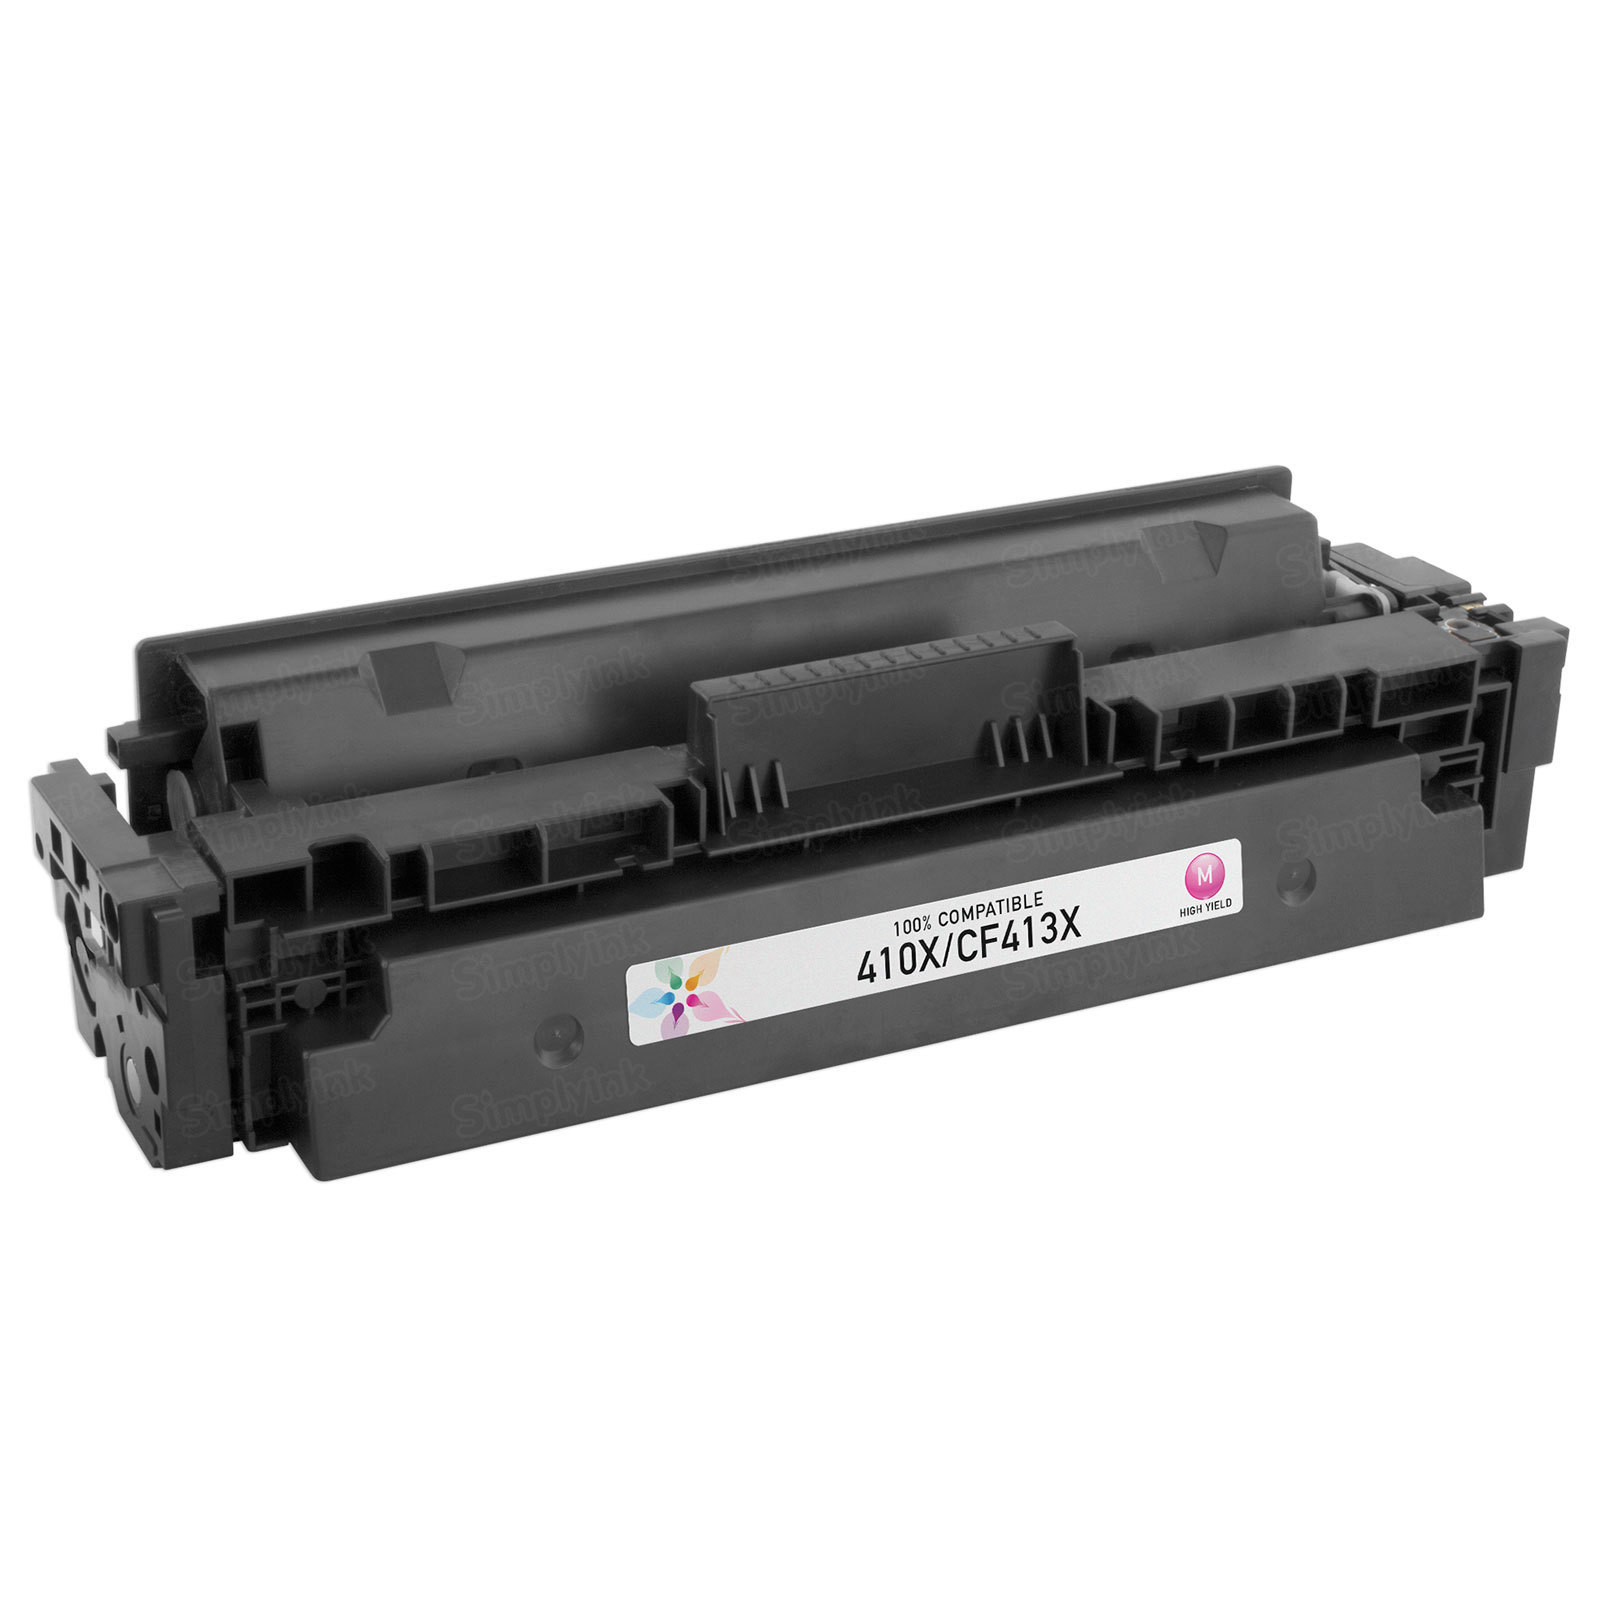 Replacement HY Magenta Toner for HP 410X